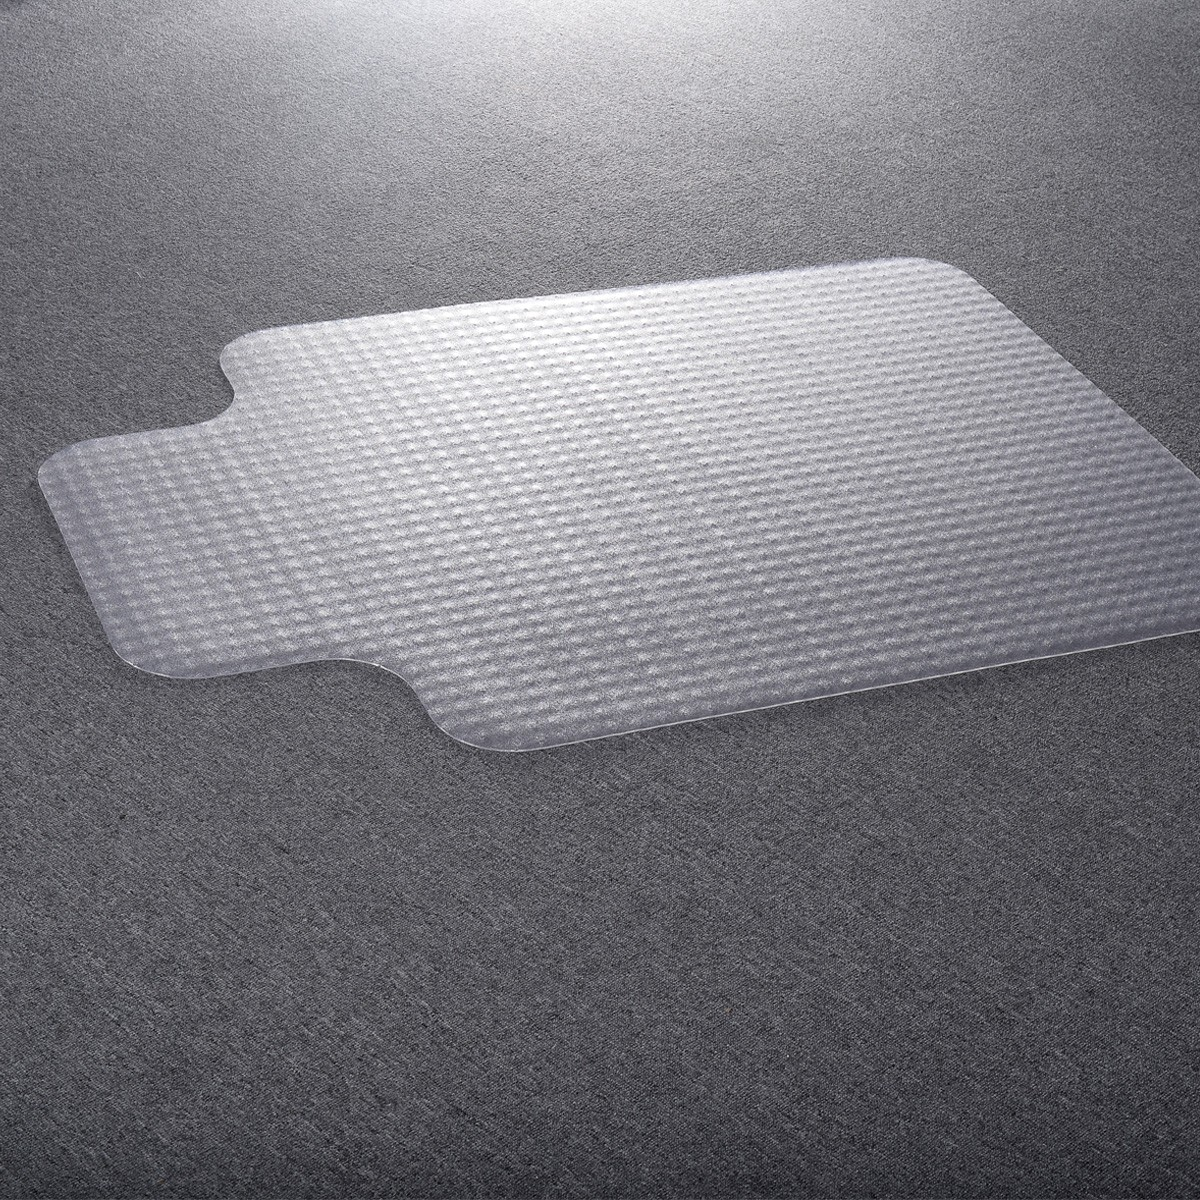 pvc chair mat for standard pile carpet chair office mat. Black Bedroom Furniture Sets. Home Design Ideas